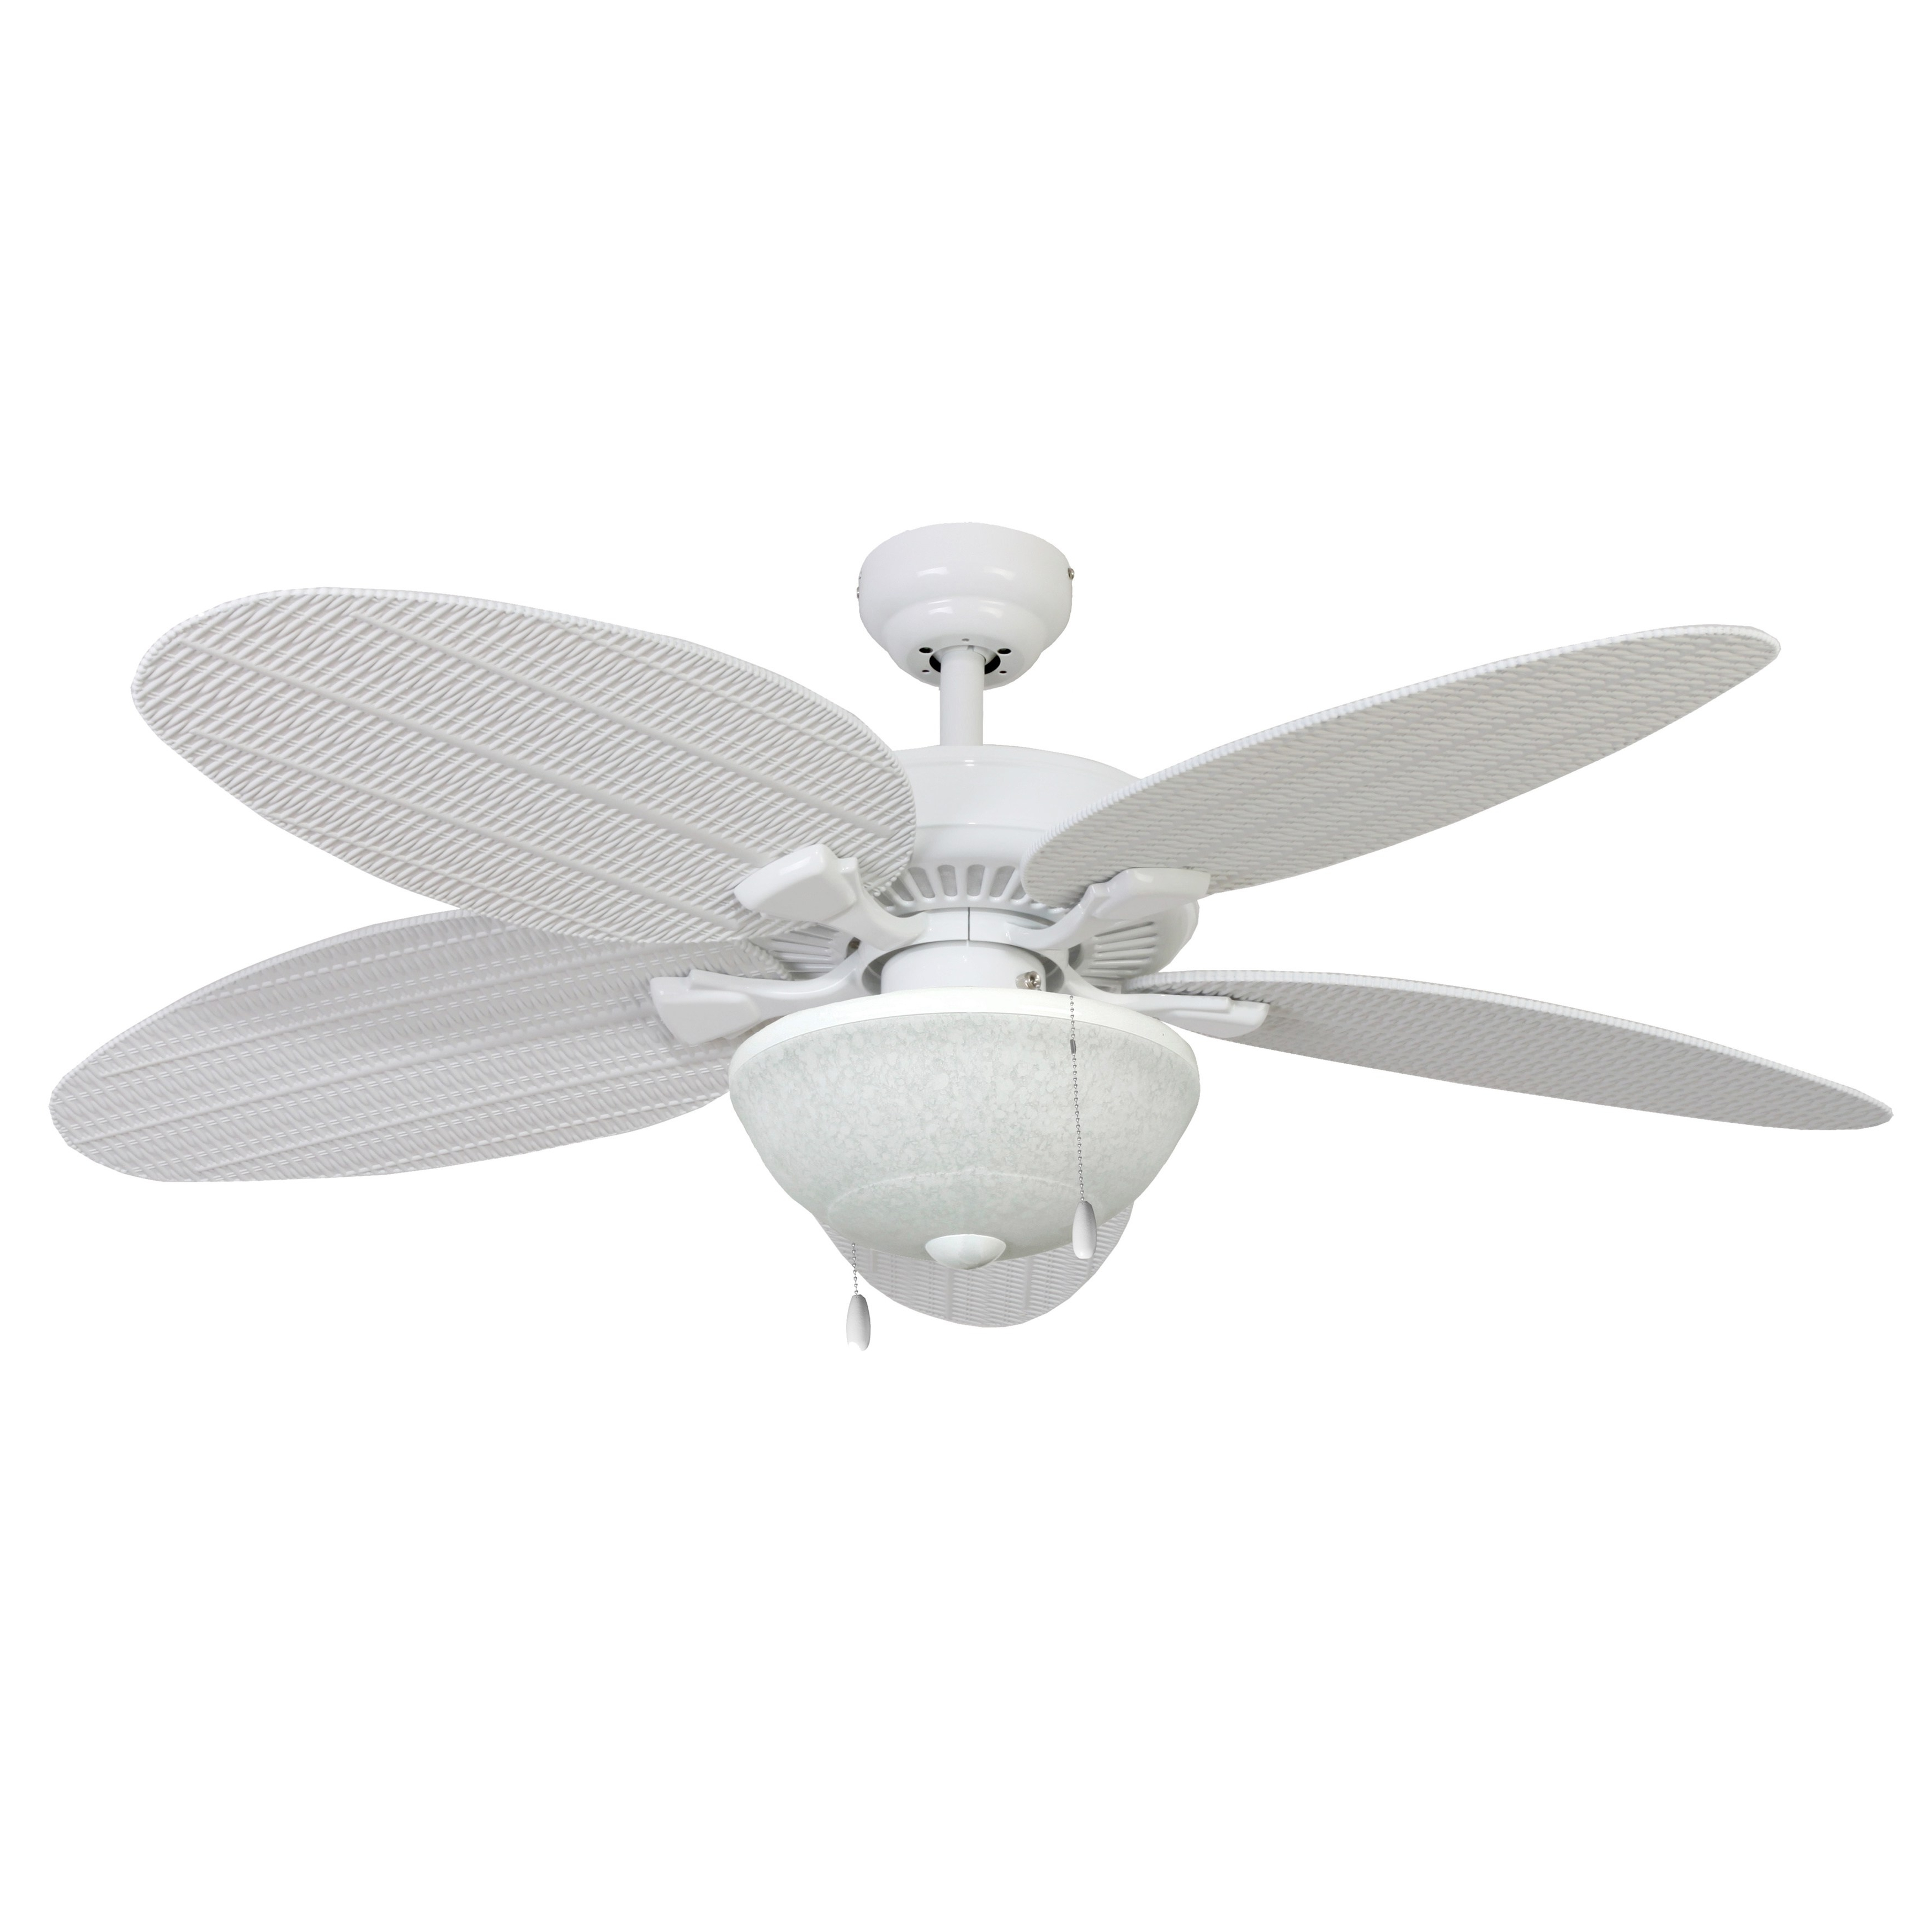 Wicker Outdoor Ceiling Fans With Lights With Well Liked Shop Ecosure Siesta Key 52 Inch Tropical, White Bowl Light Indoor (View 20 of 20)